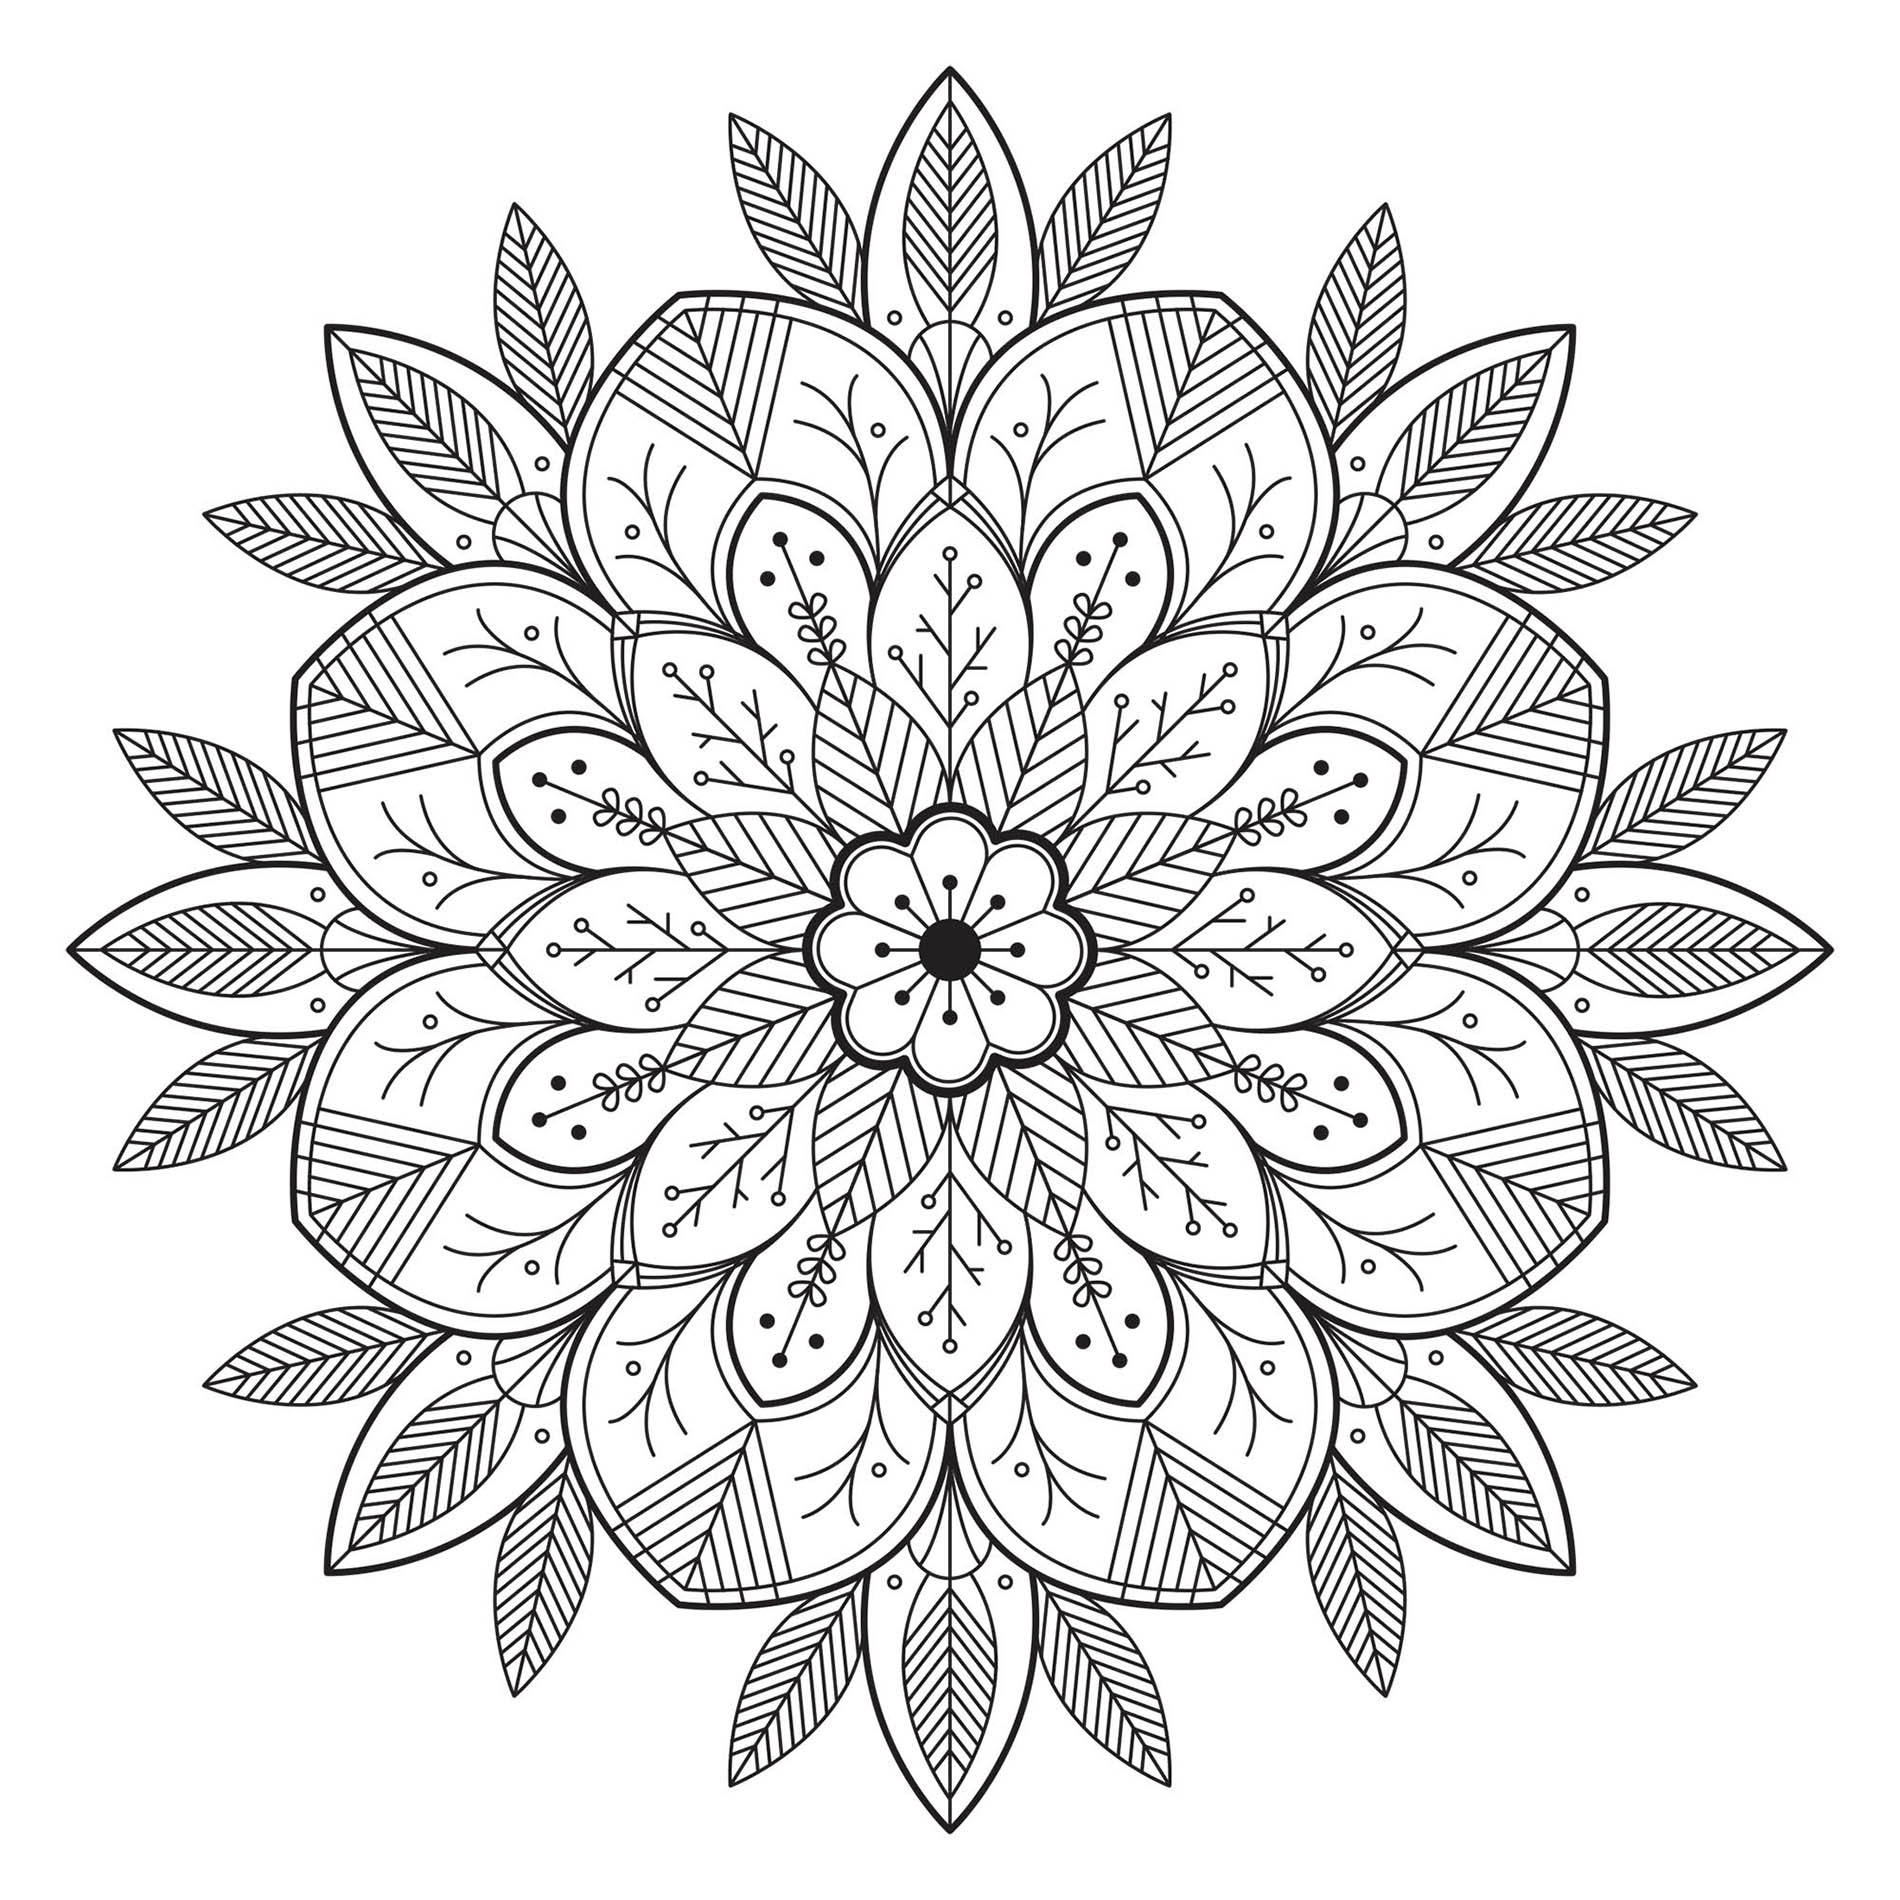 Free Mandalas coloring page to print and color, for kids